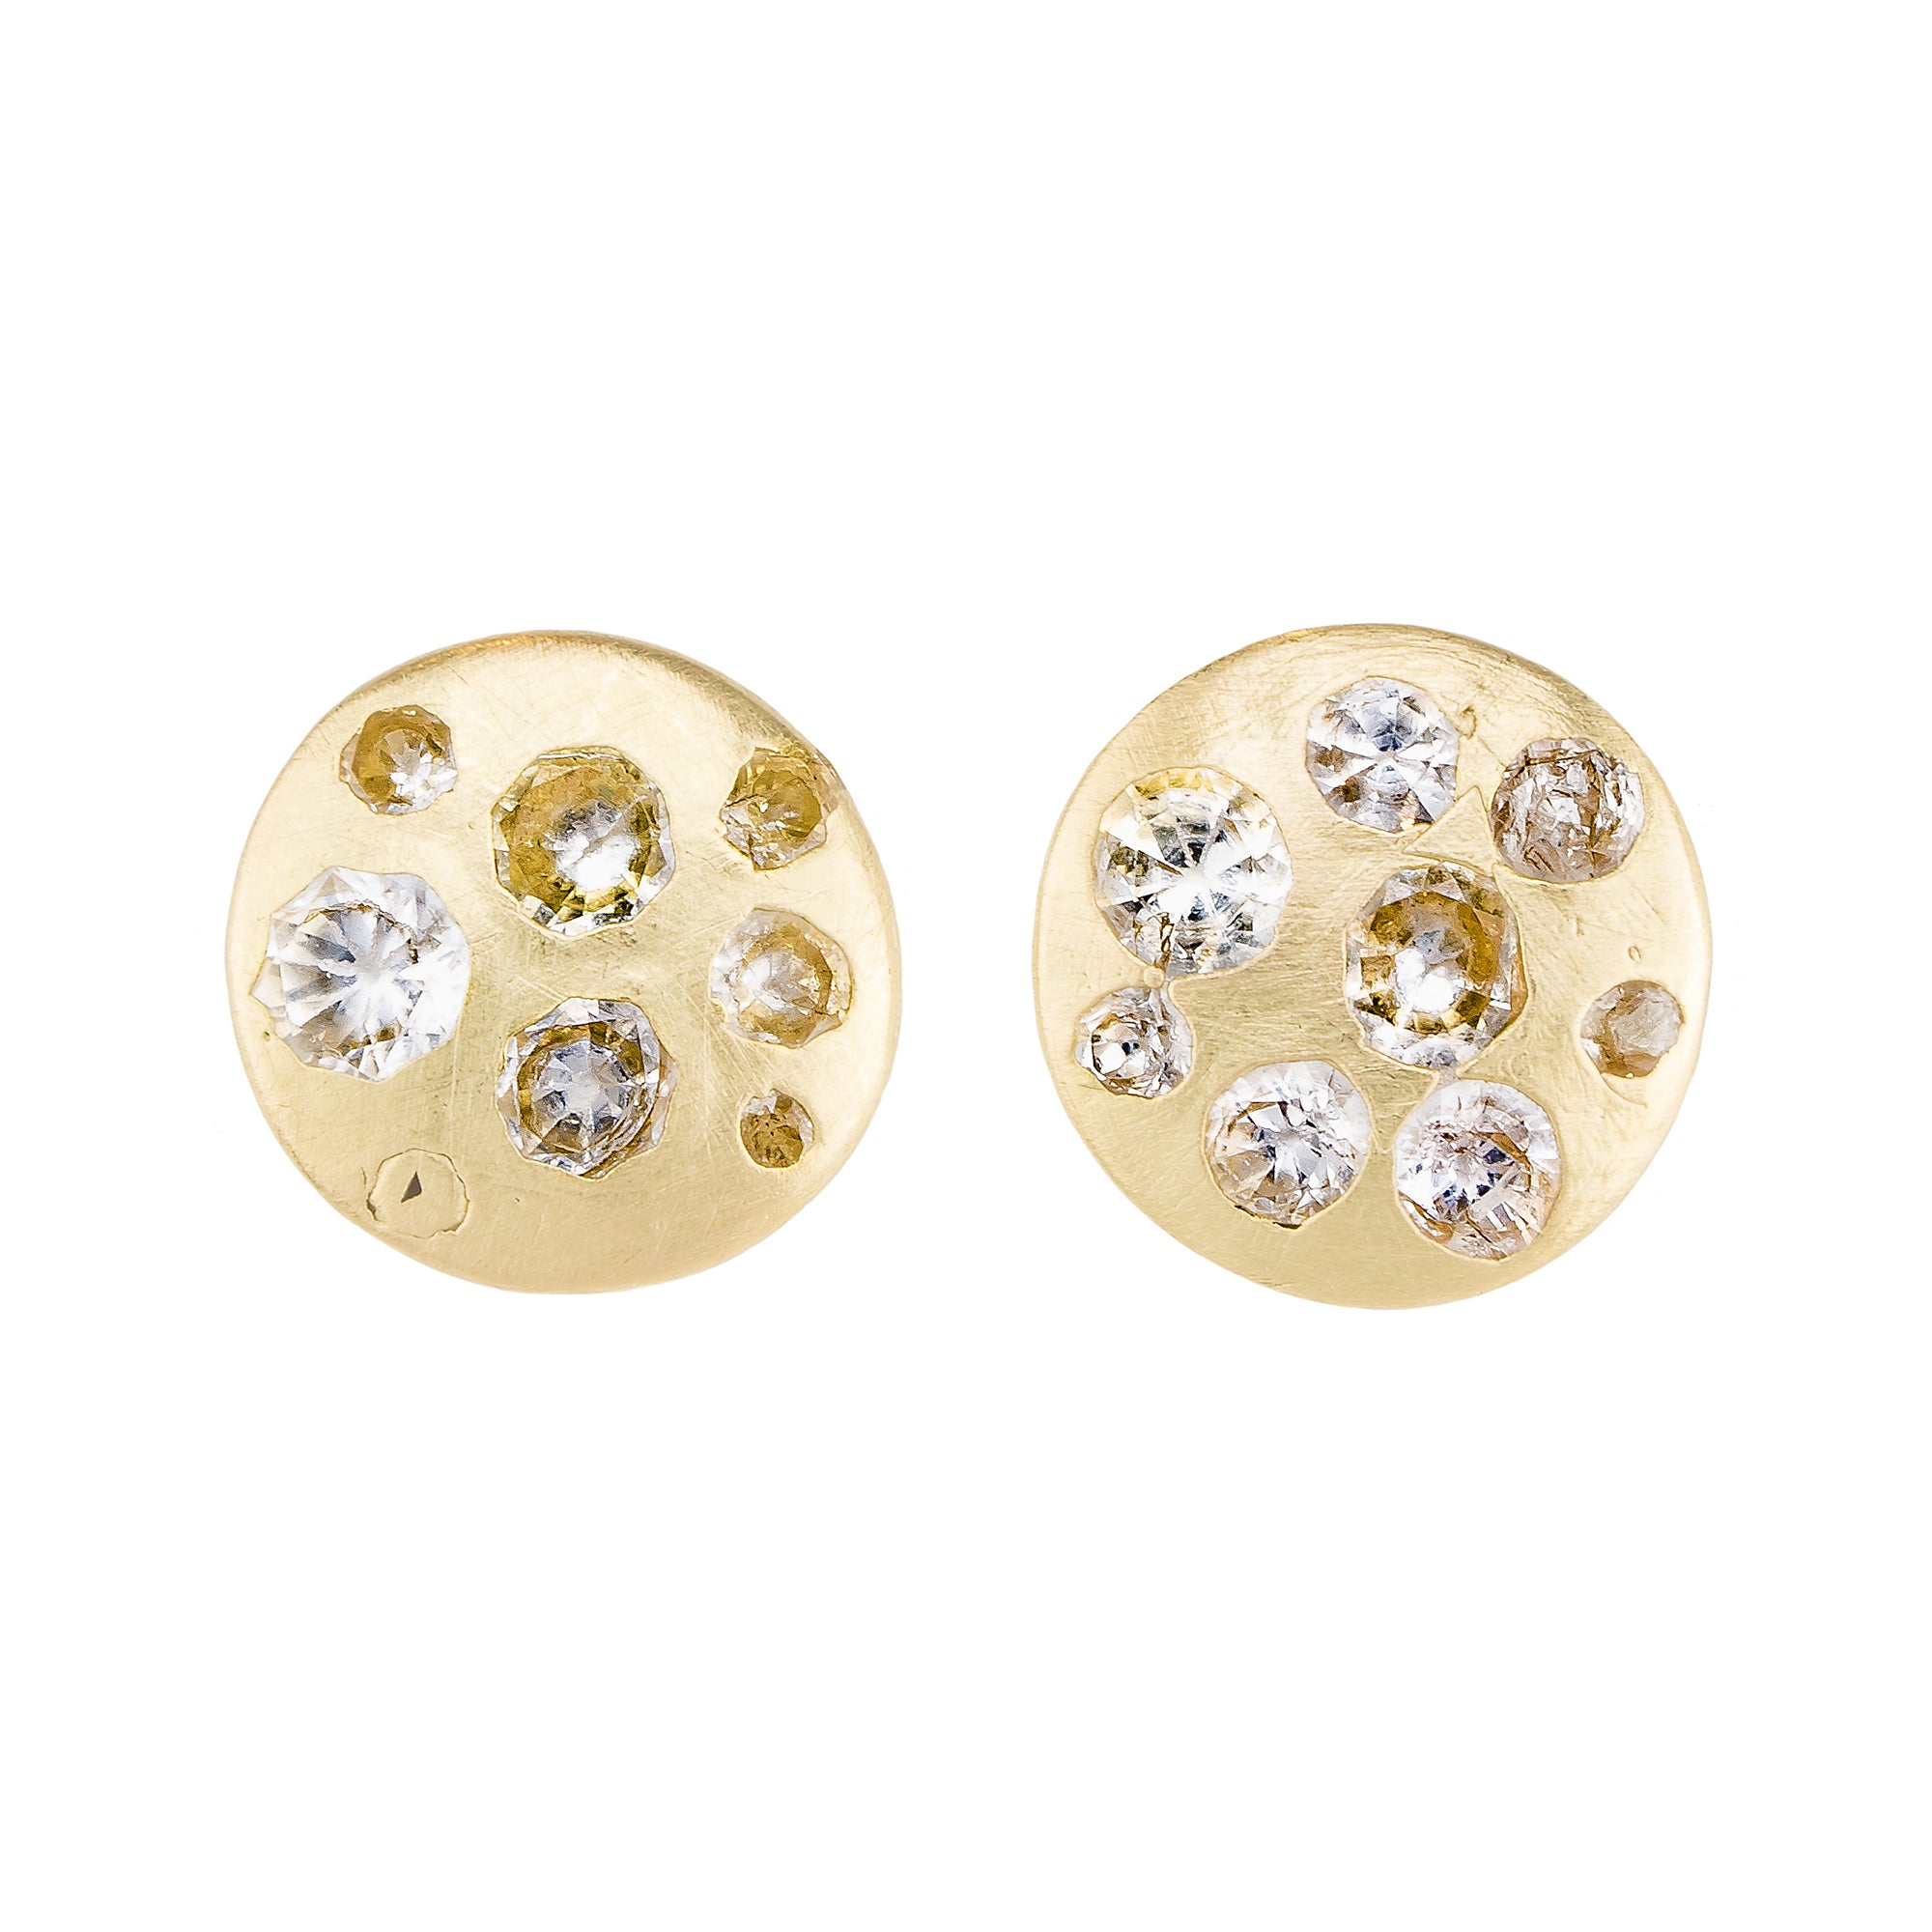 Celeste Disc Studs by Polly Wales for Broken English Jewelry